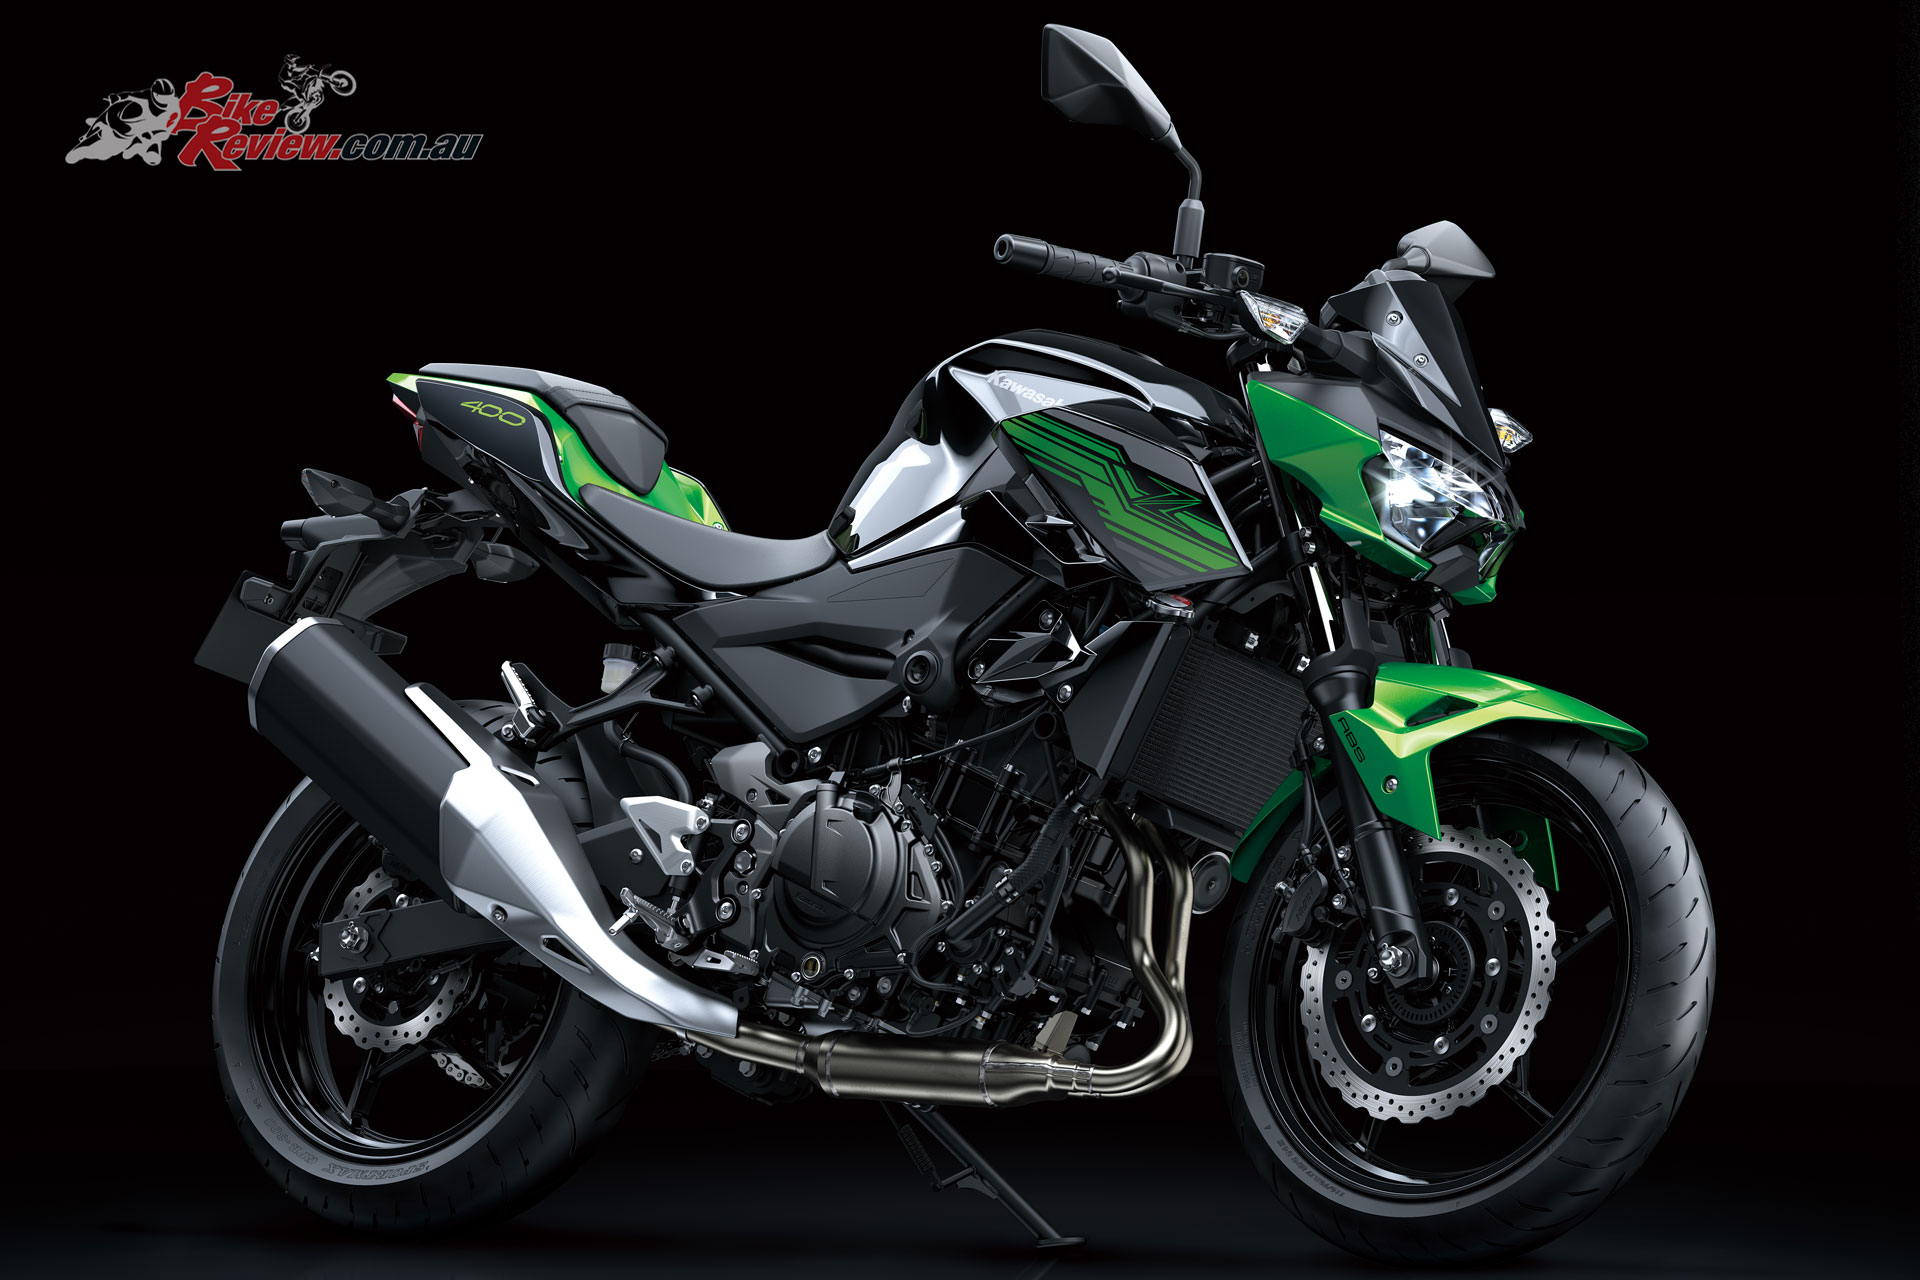 The 2019 Kawasaki Z400 LAMS features clean lines and minimalistic styling